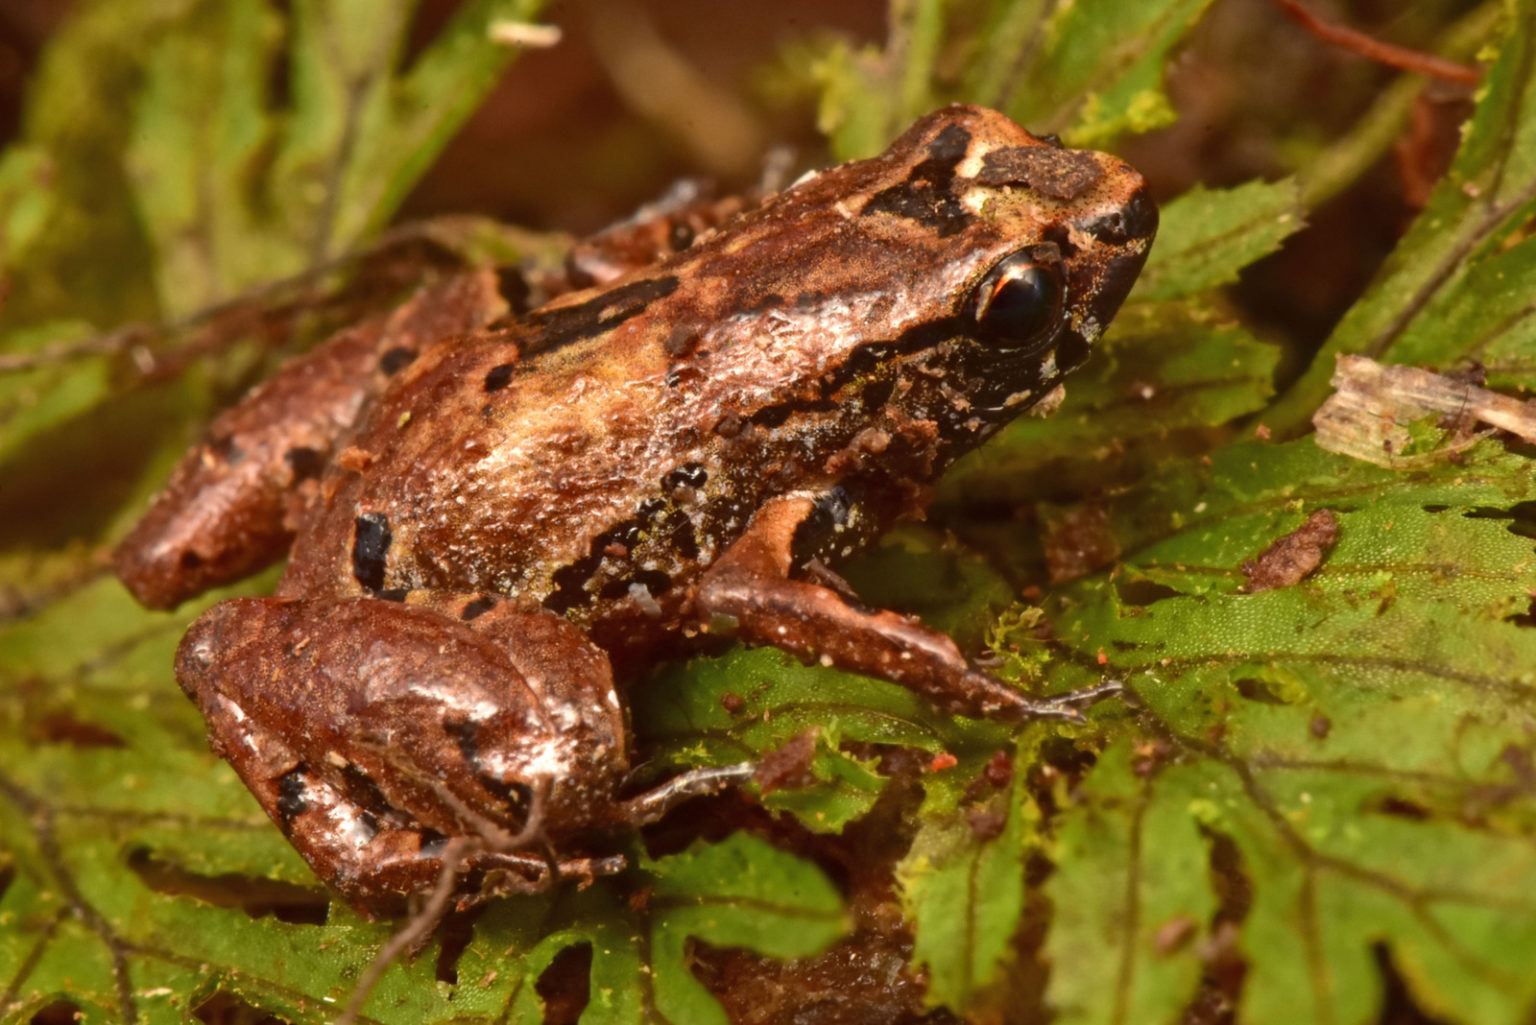 The lilliputian frog (Noblella sp. nov.) found in Bolivia is among the smallest in the world. mage © Trond Larsen